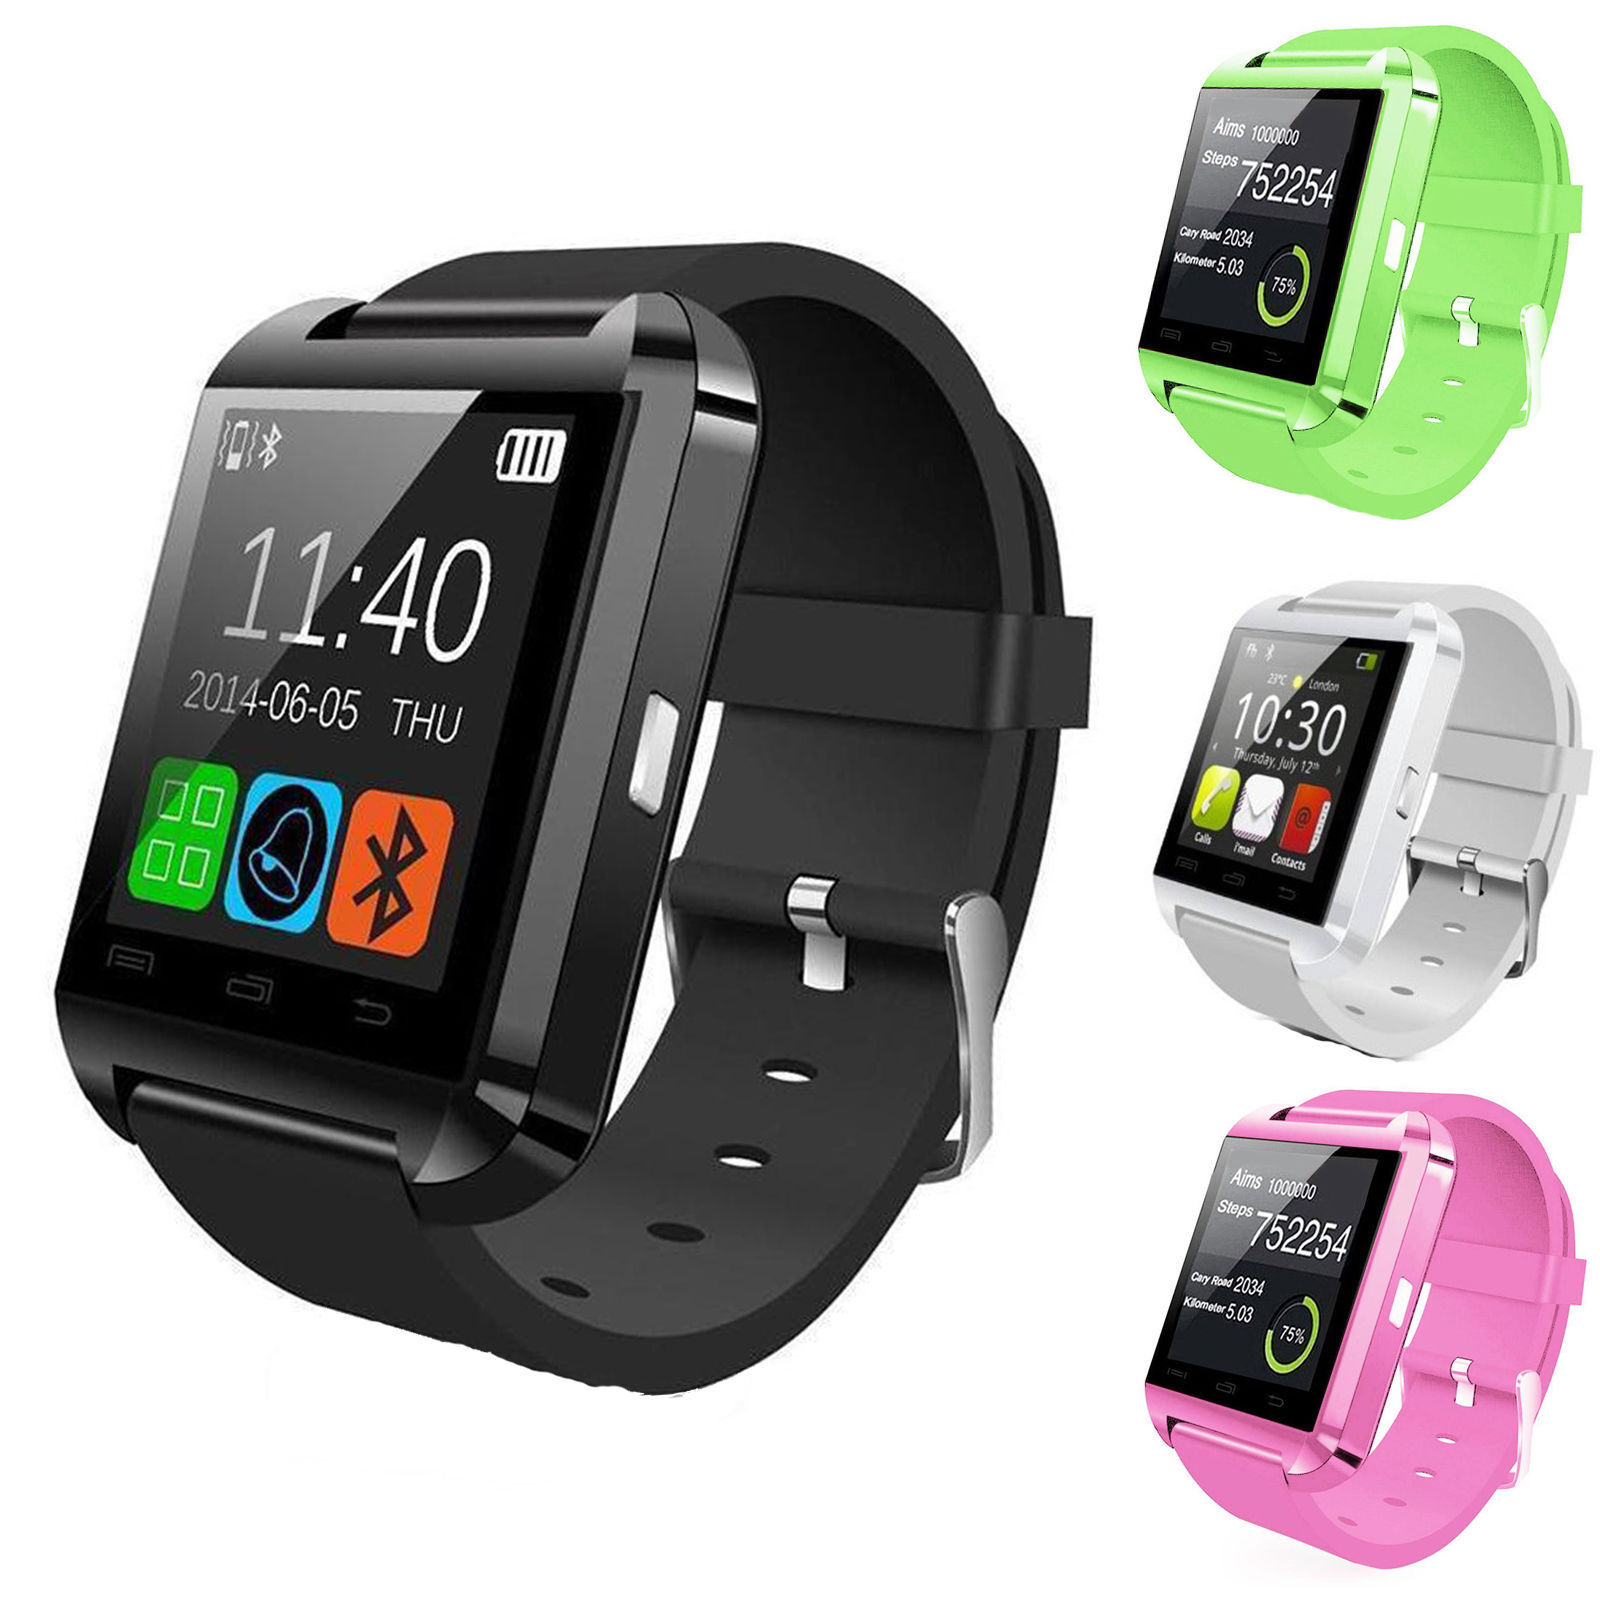 New Bluetooth Smart Wrist Watch Phone Mate For Android IOS Samsung iPhone LG Cell Phones & Accessories